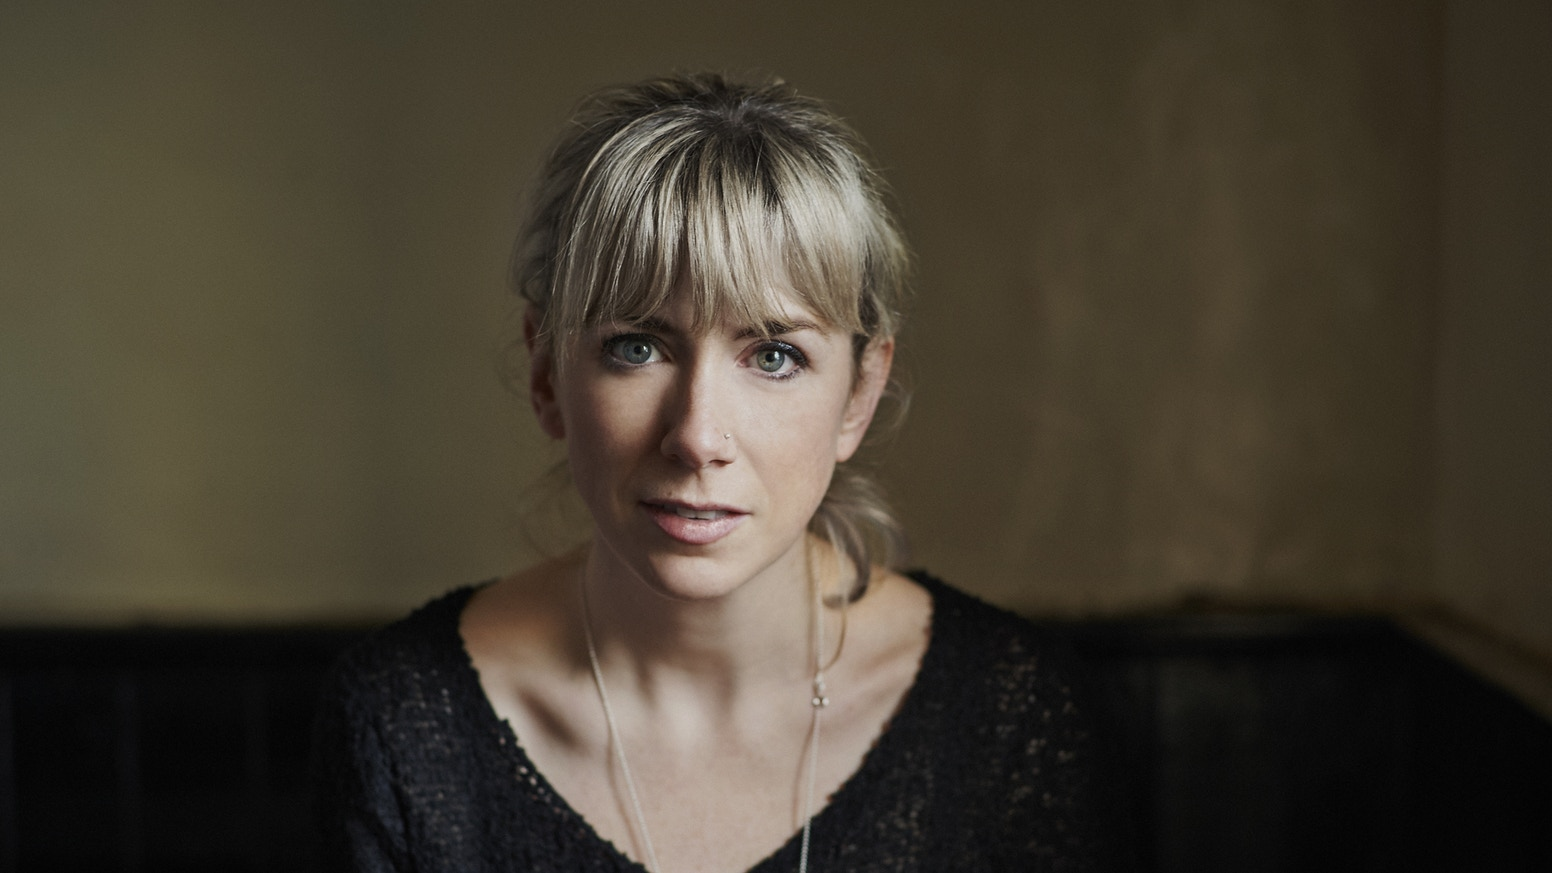 Listen : Geoff chats to Muireann Nic Amhlaoibh about her new CD